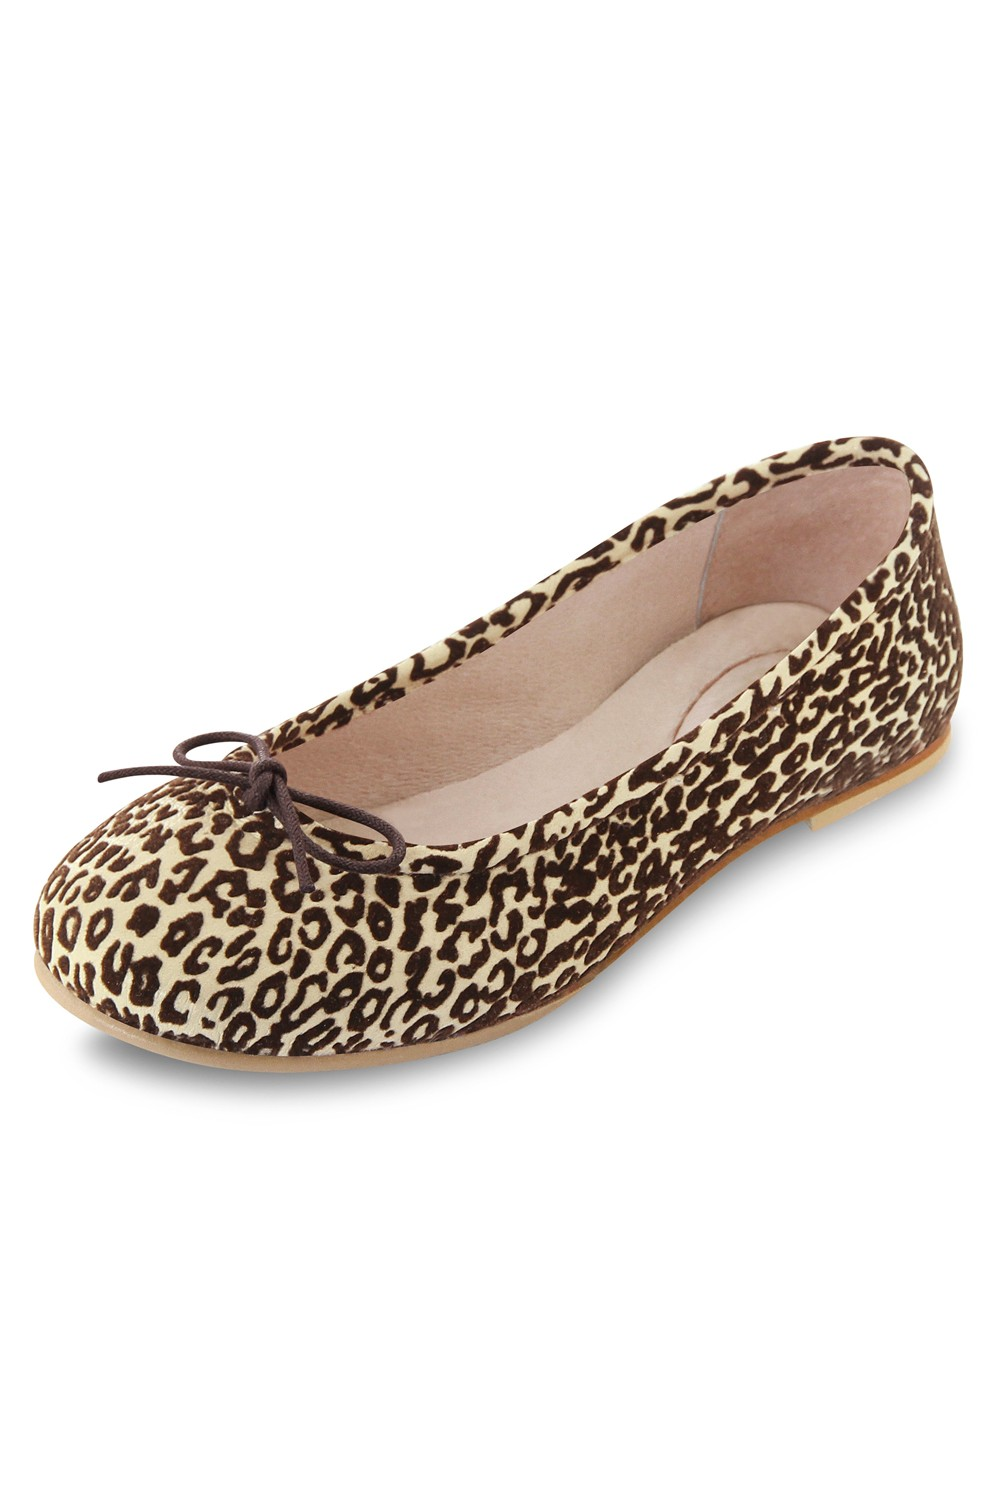 Arabella Leopard - Girls Girls Fashion Shoes